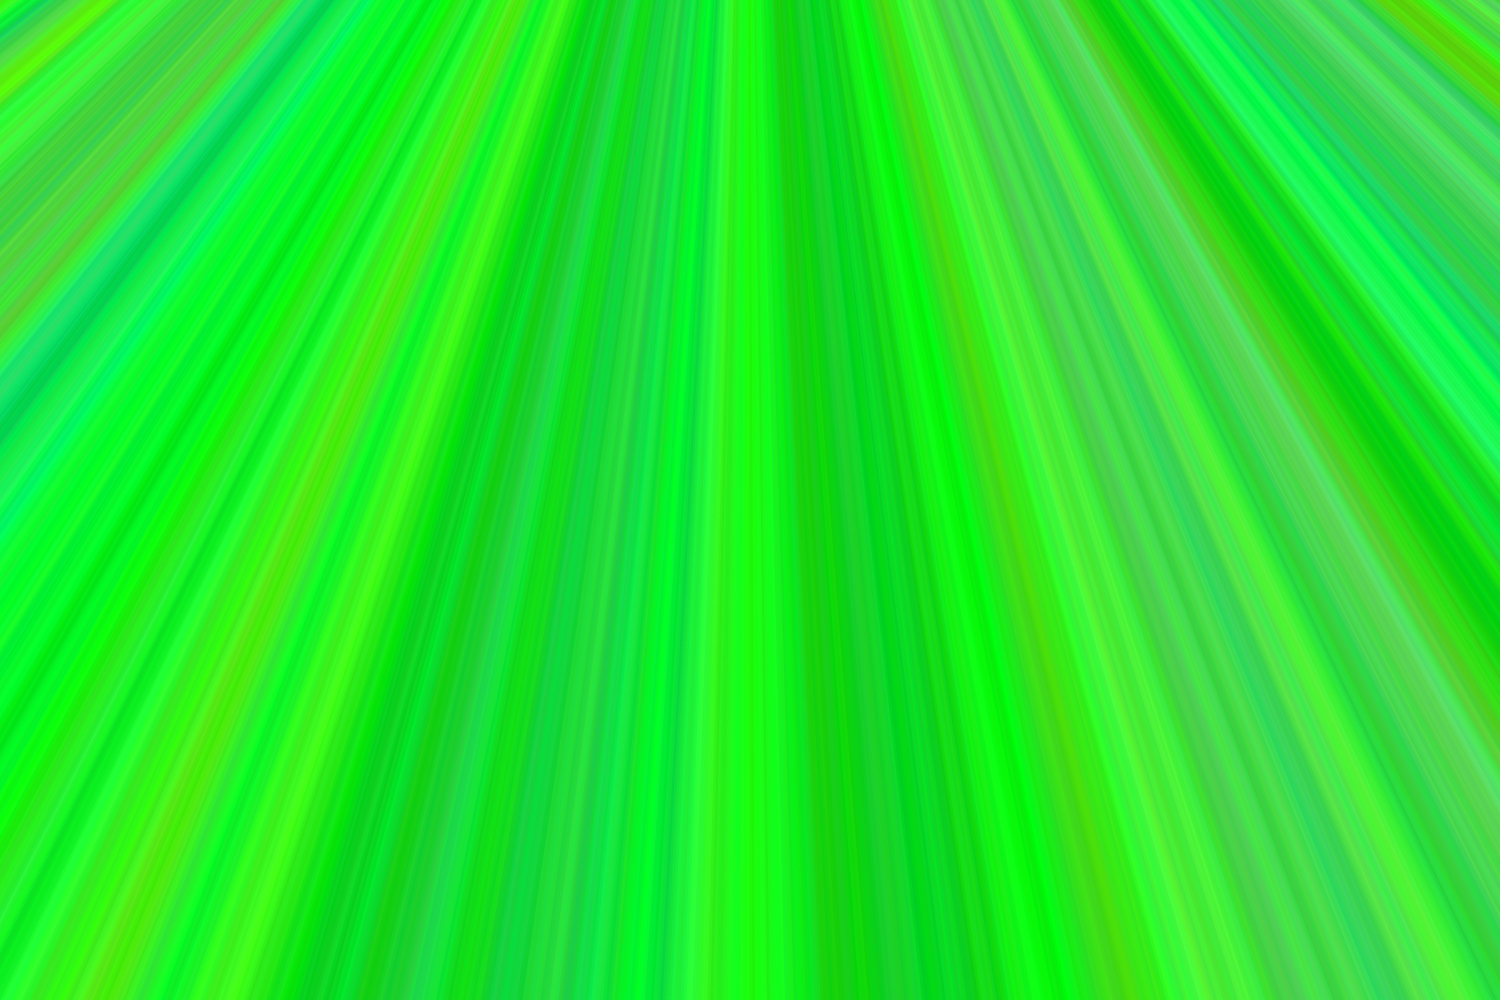 10 Color Backgrounds (AI, EPS, JPG 5000x5000) example image 5